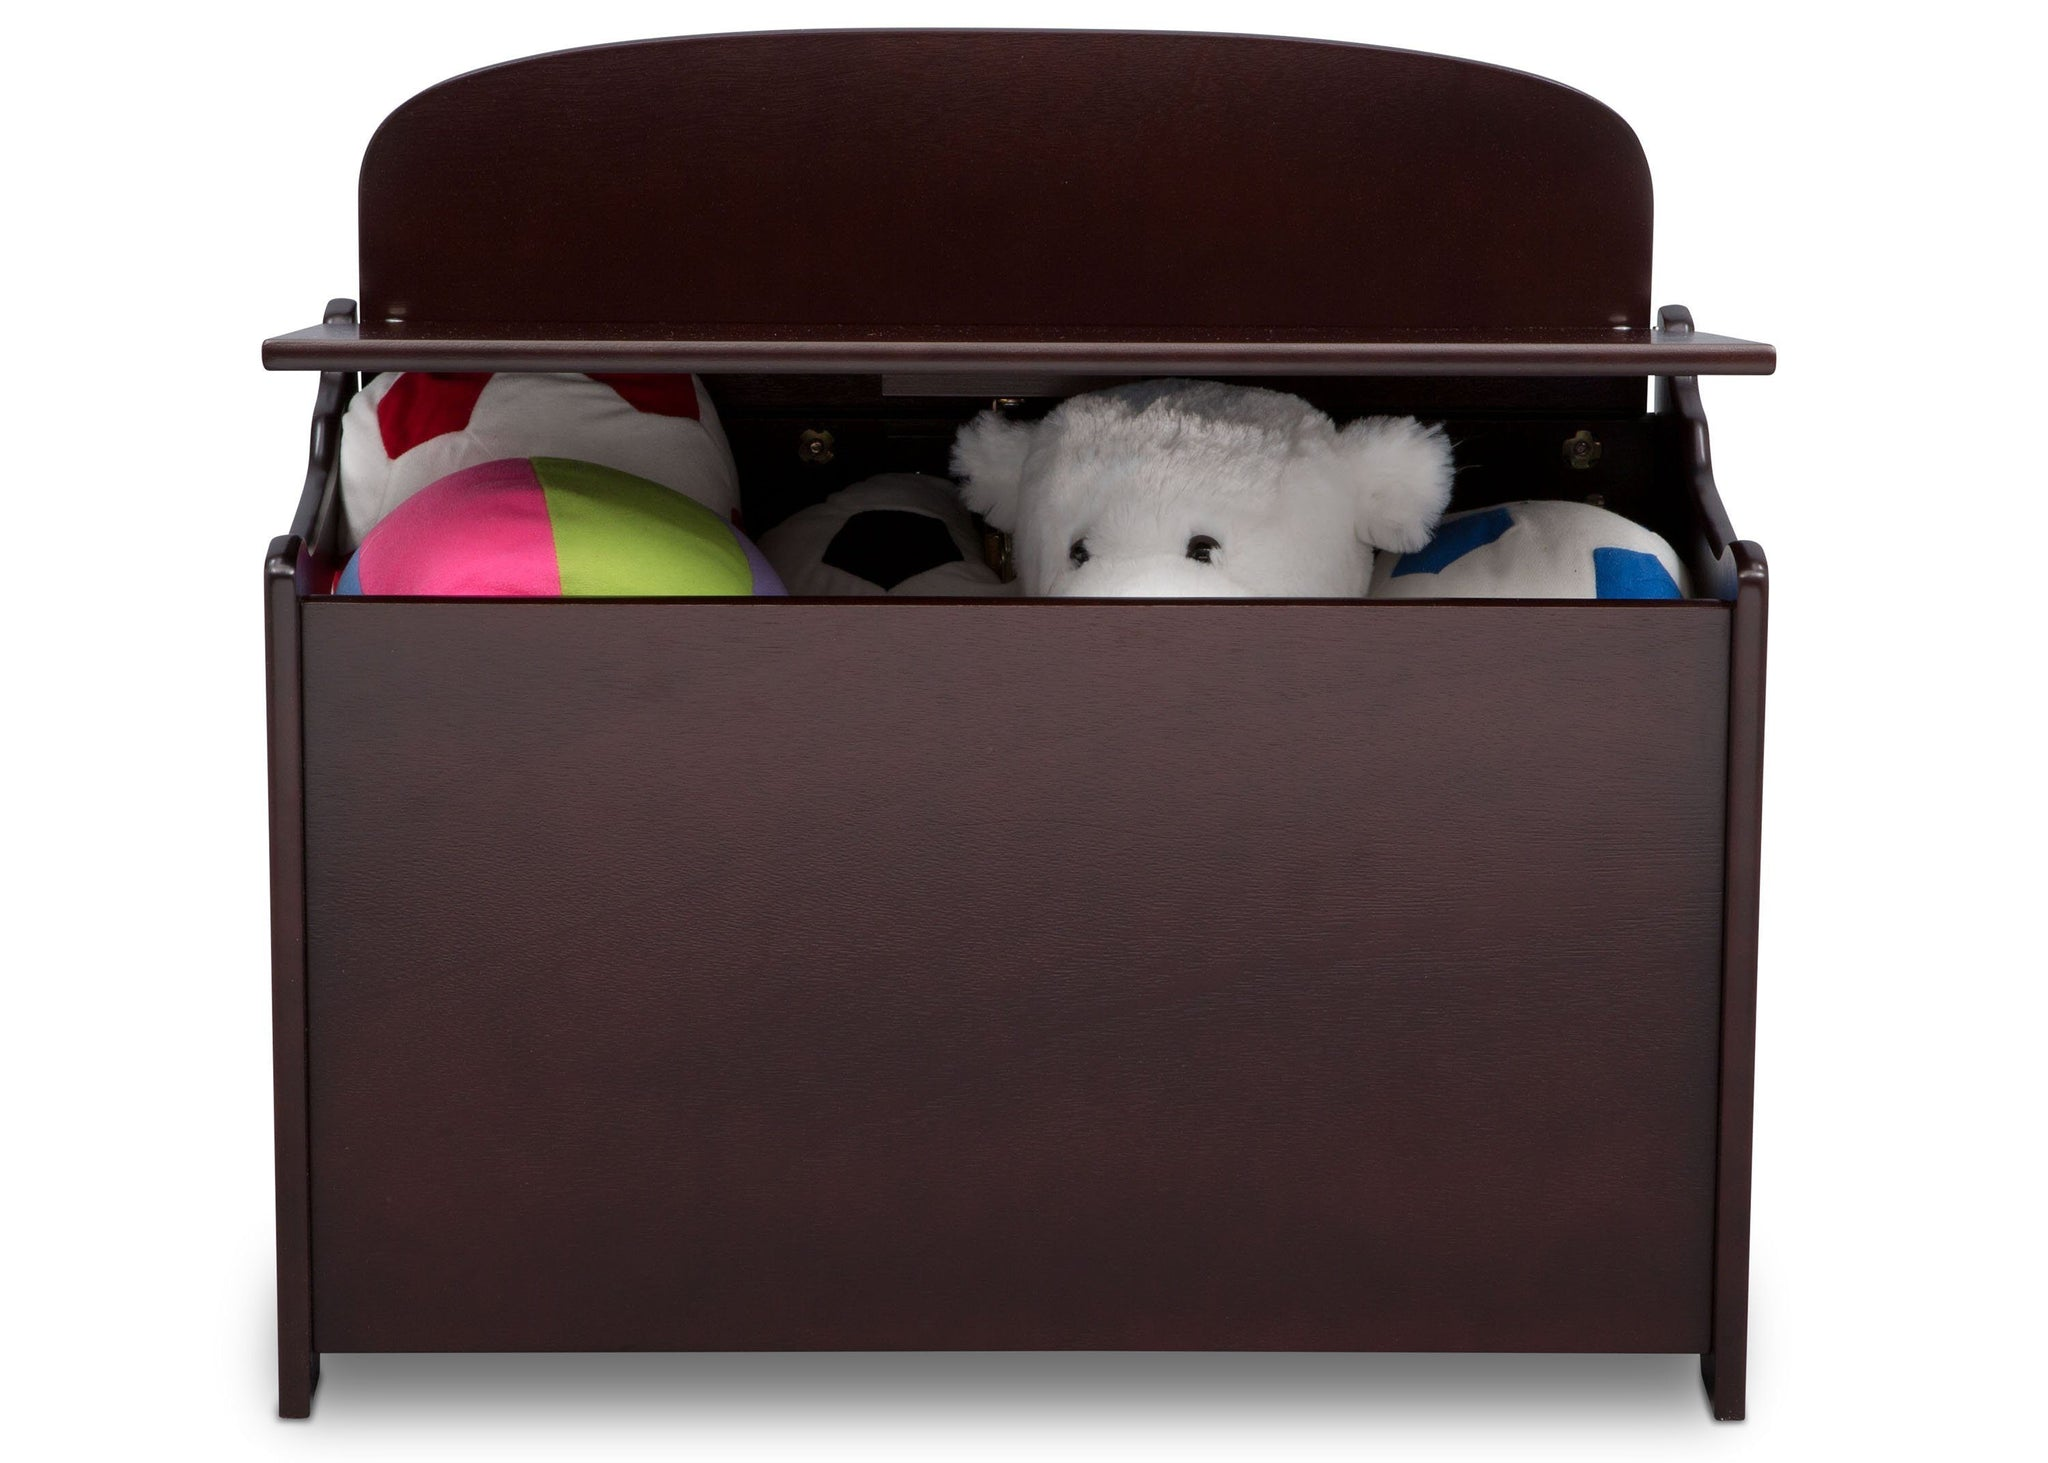 Delta Children Dark Chocolate (207) MySize Deluxe Toy Box, Front Detail, c2c